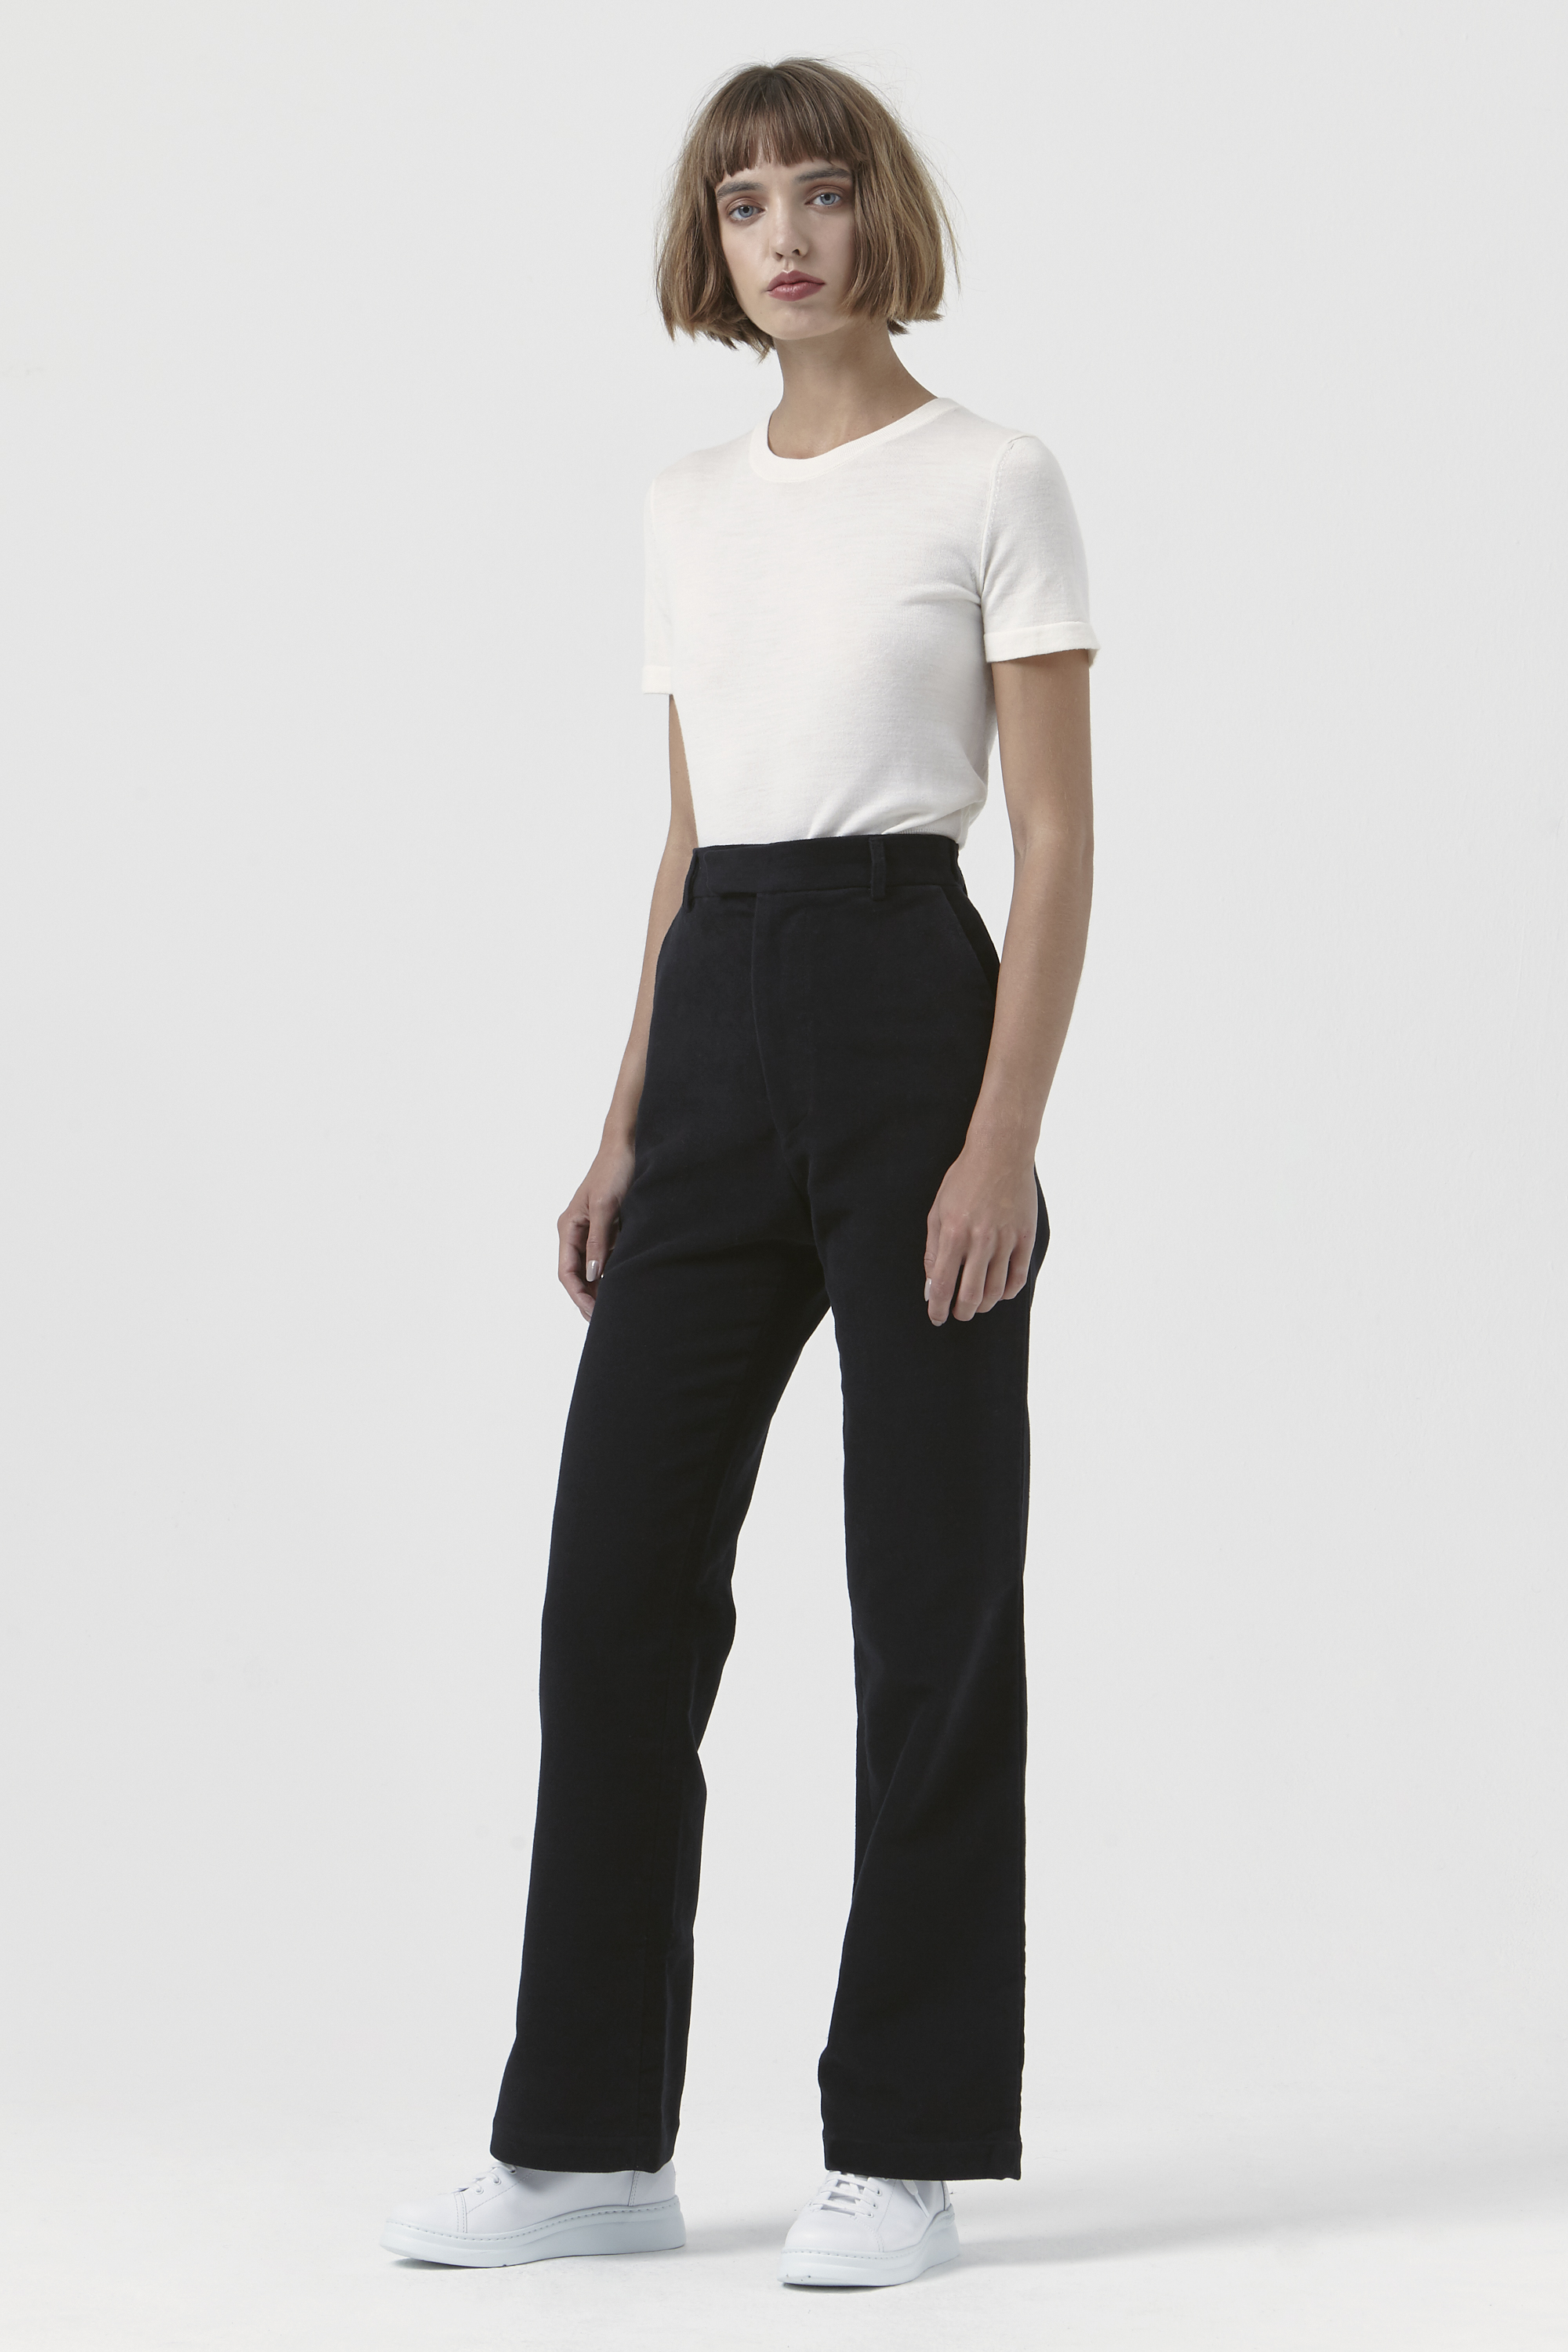 Adriana Black Organic Cotton Trousers